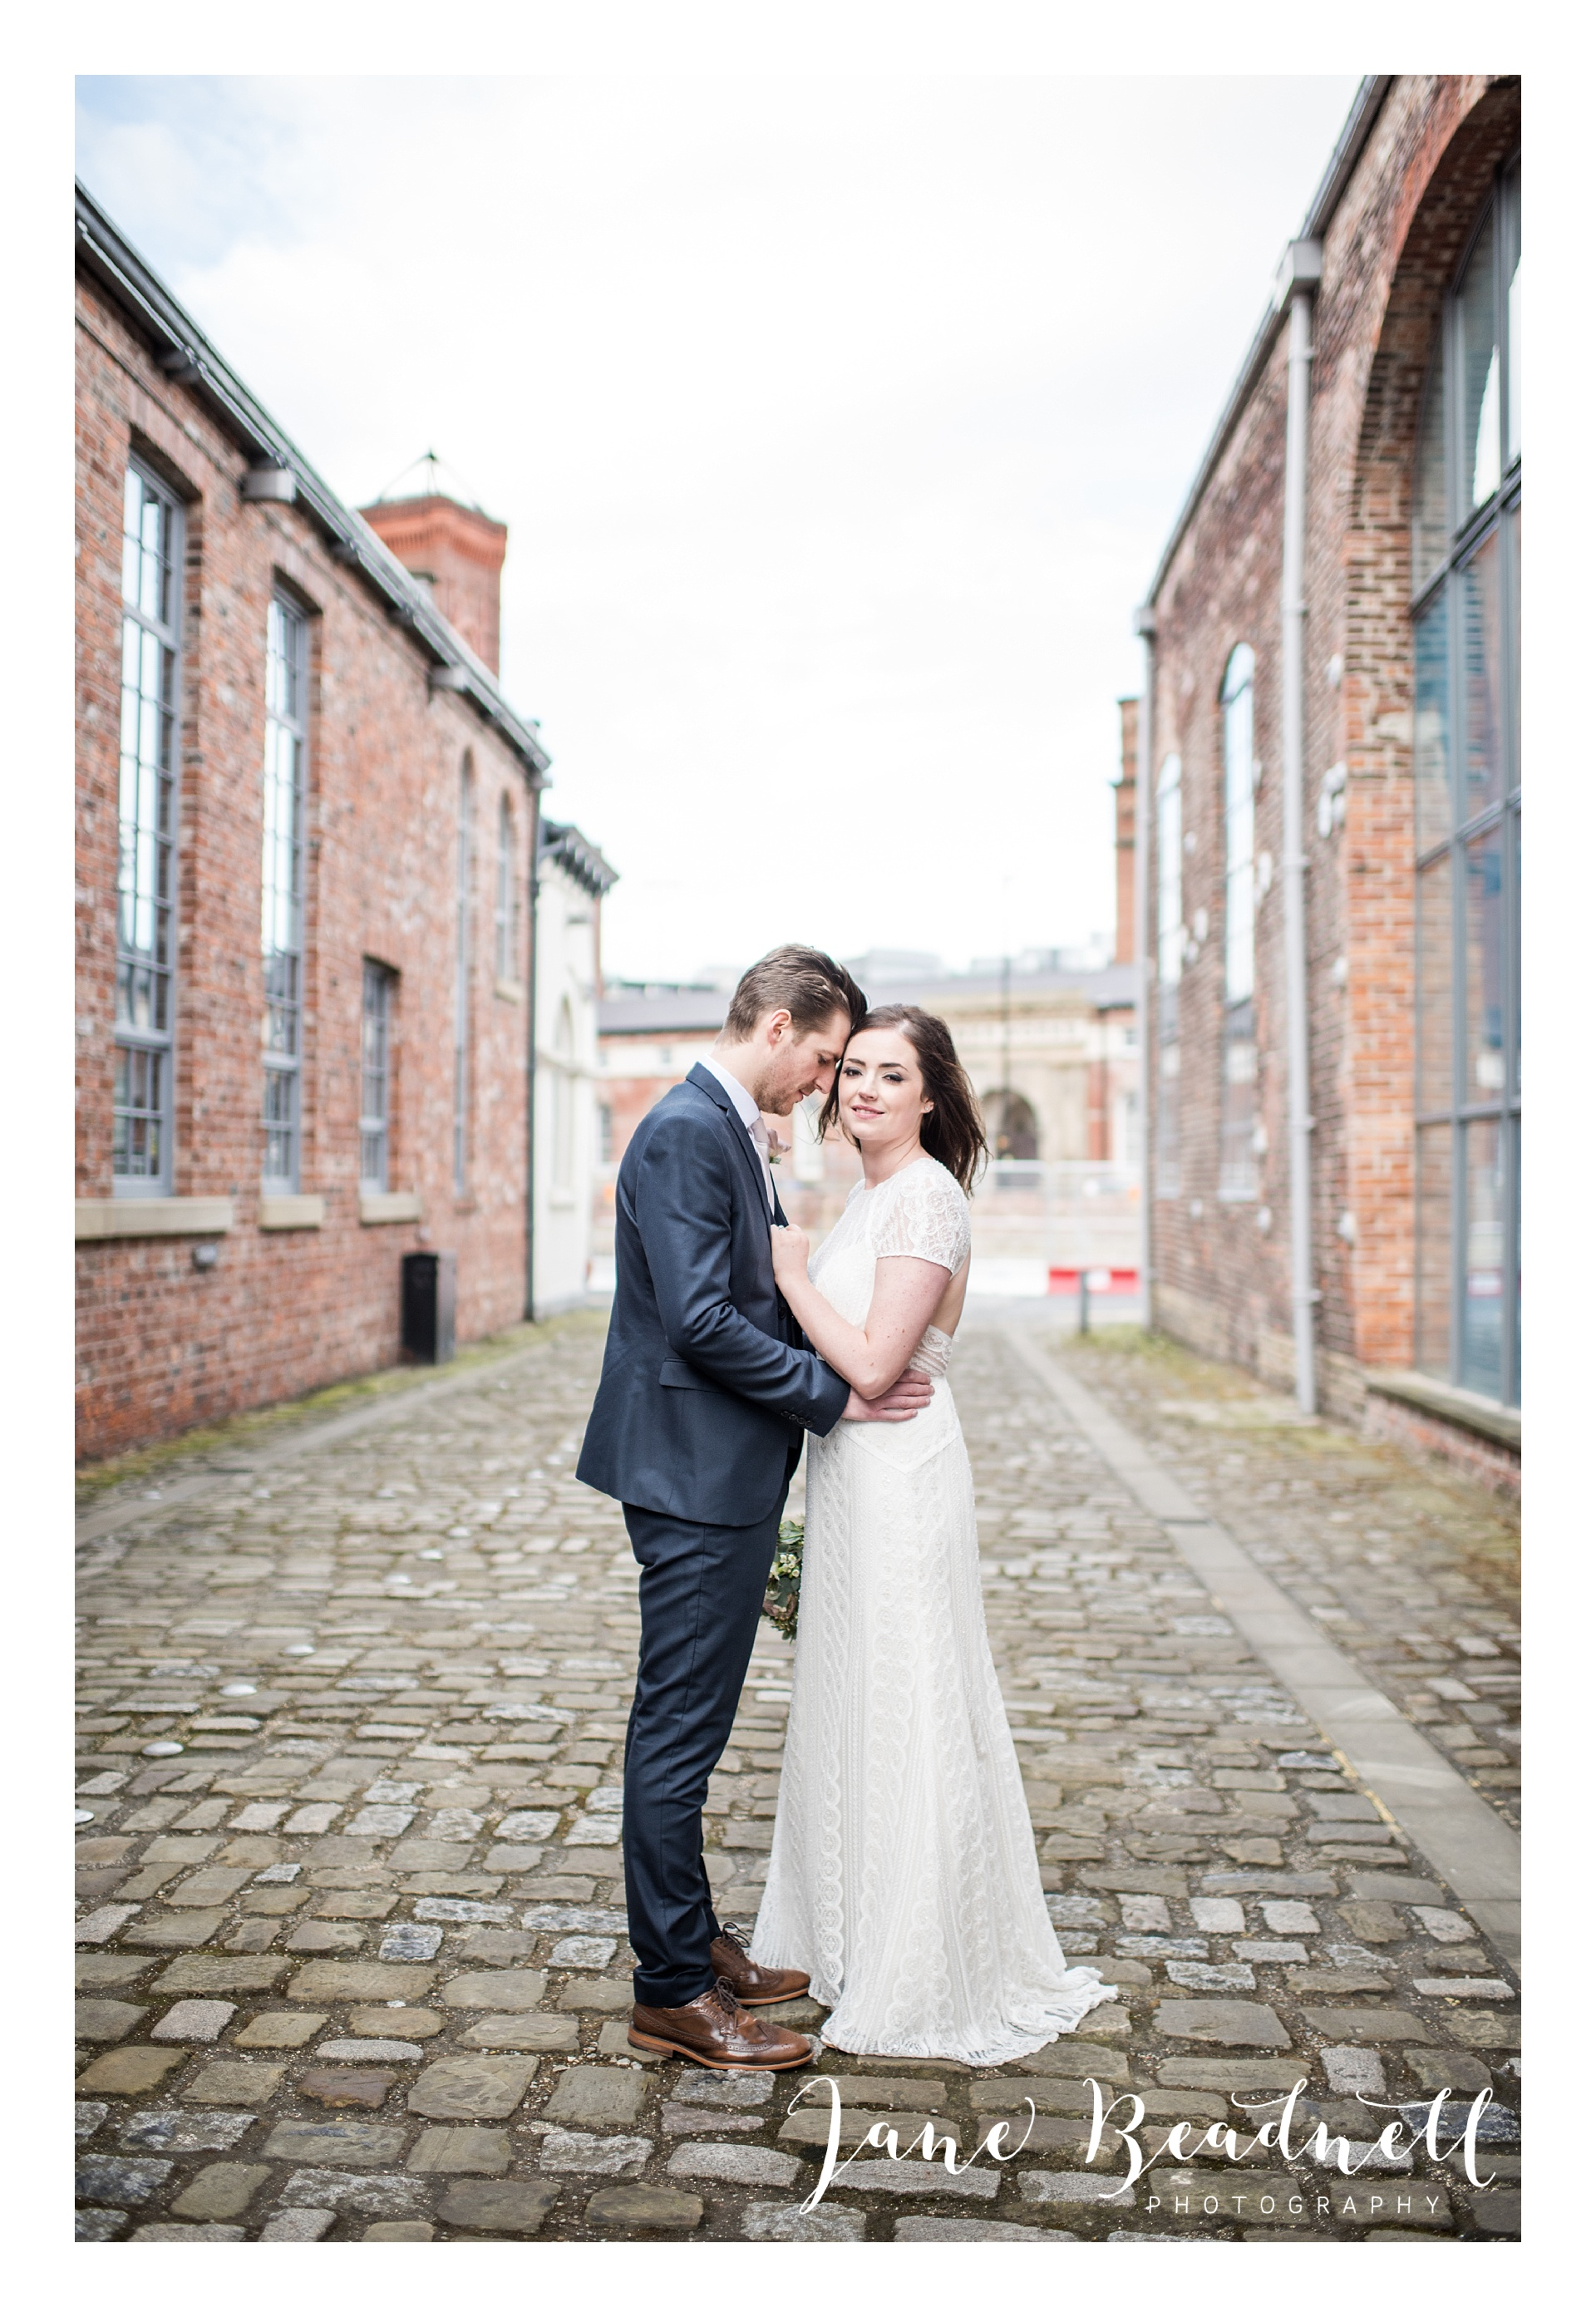 Wedding photography Cross Keys Leeds Wedding Jane Beadnell Photography_0104